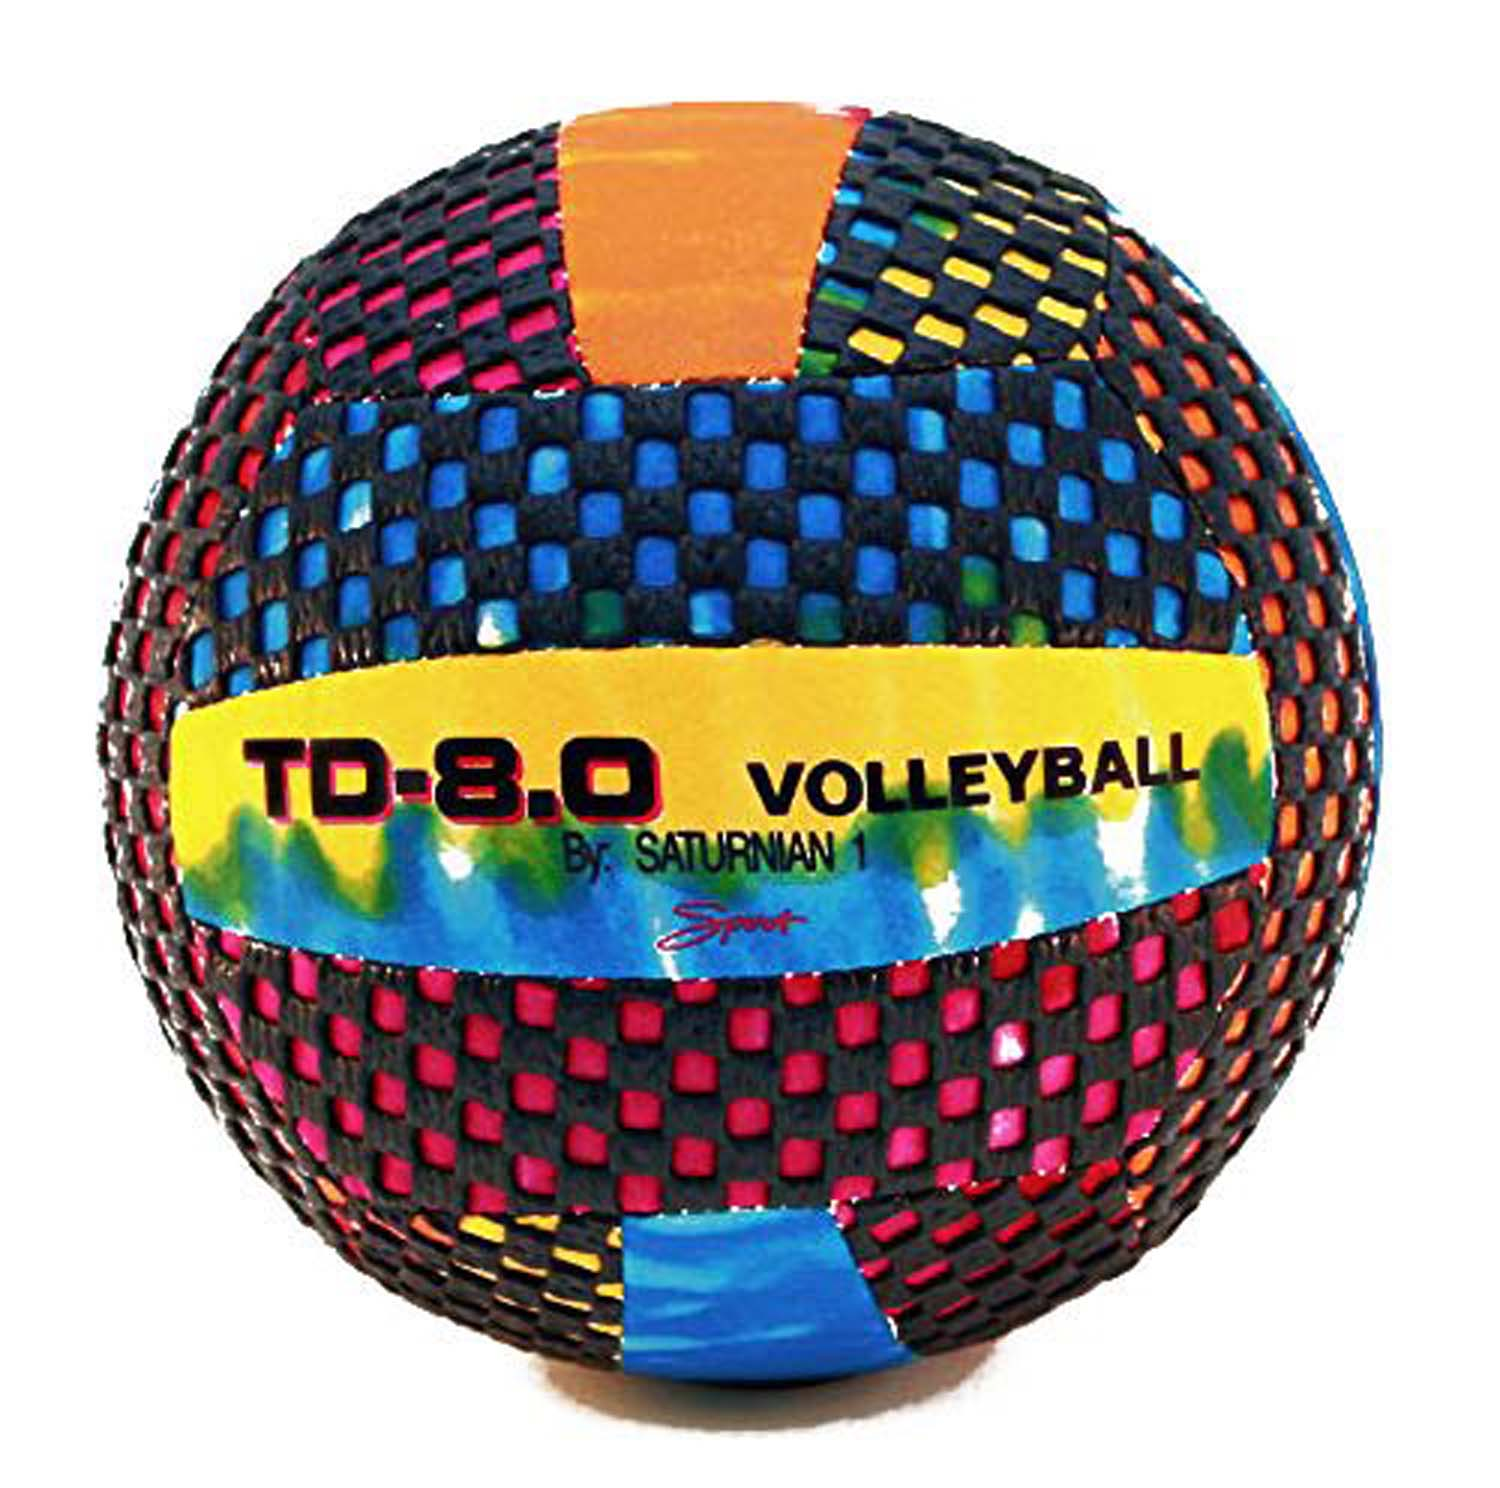 "Fun Gripper Tie-dye (td) 8.5"" Volley Ball ( Indoor -outdoor ) Sting Free By: Saturnian 1 - 21337 - Tennis Balls Tennis Balls Fun Express 21337"